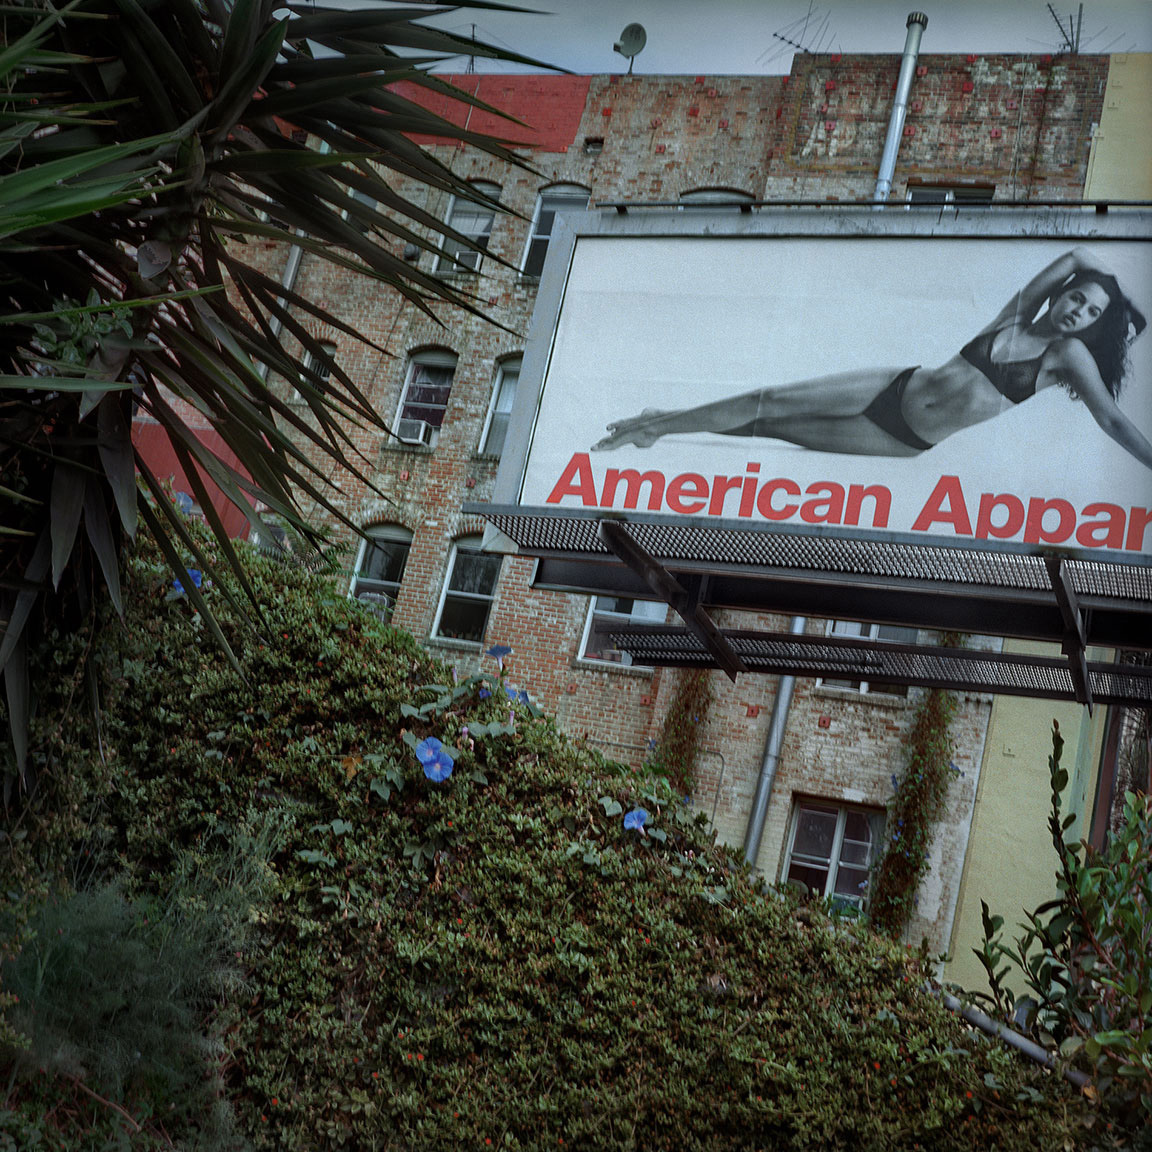 08-TheAmericanApparel-ThomasAlleman-Website-092214